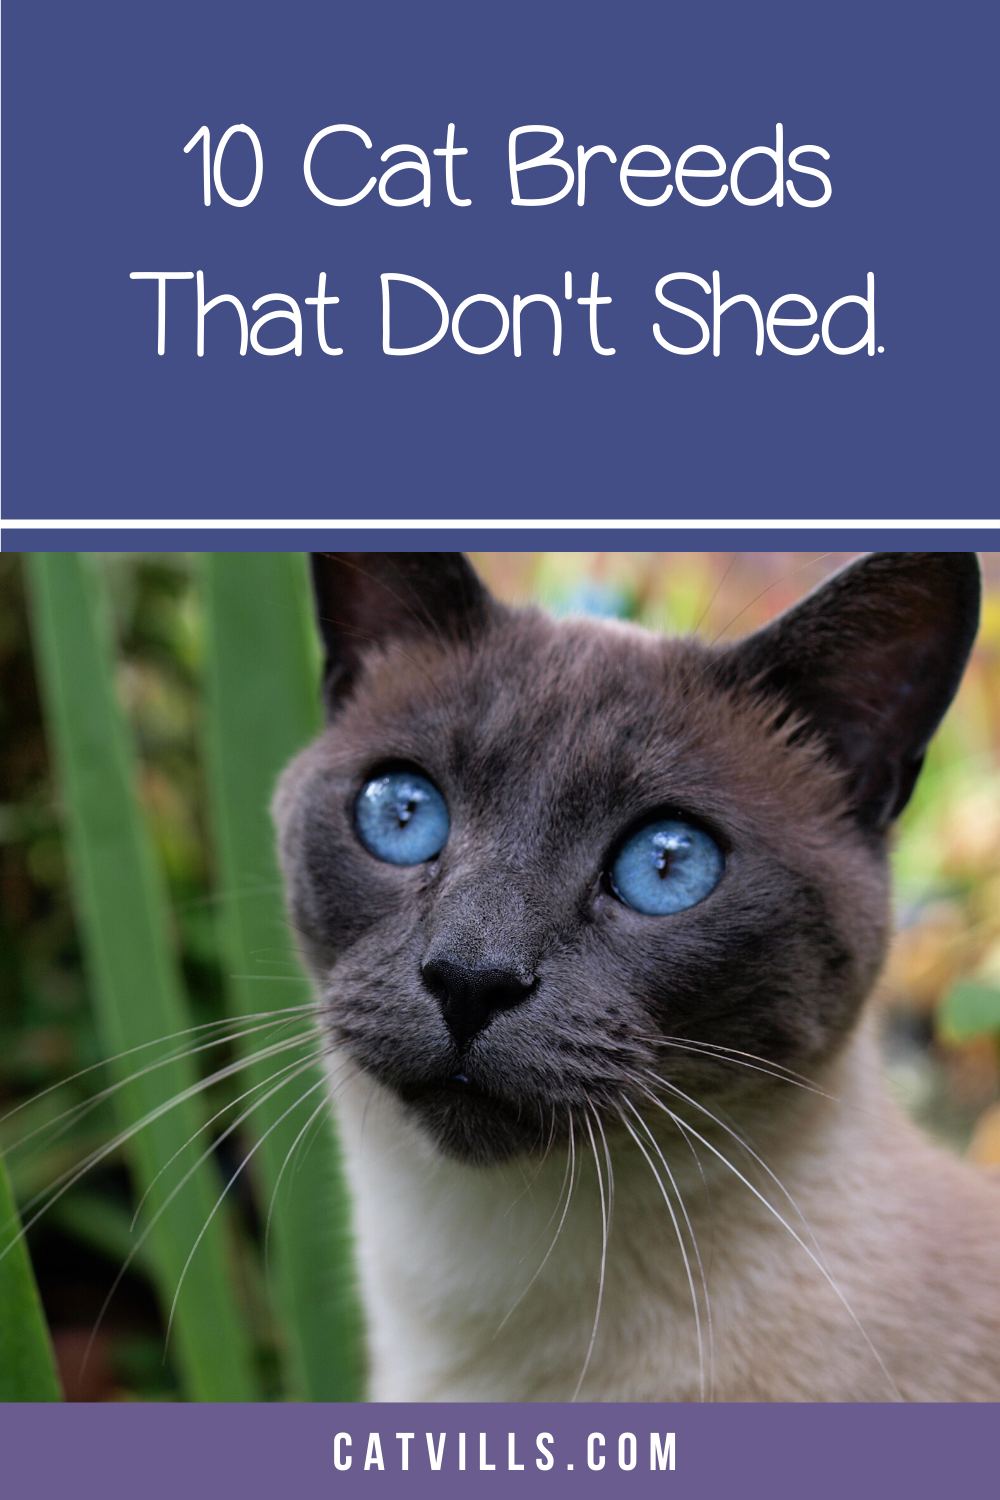 10 Cat Breeds That Don't Shed...Much in 2020 (With images